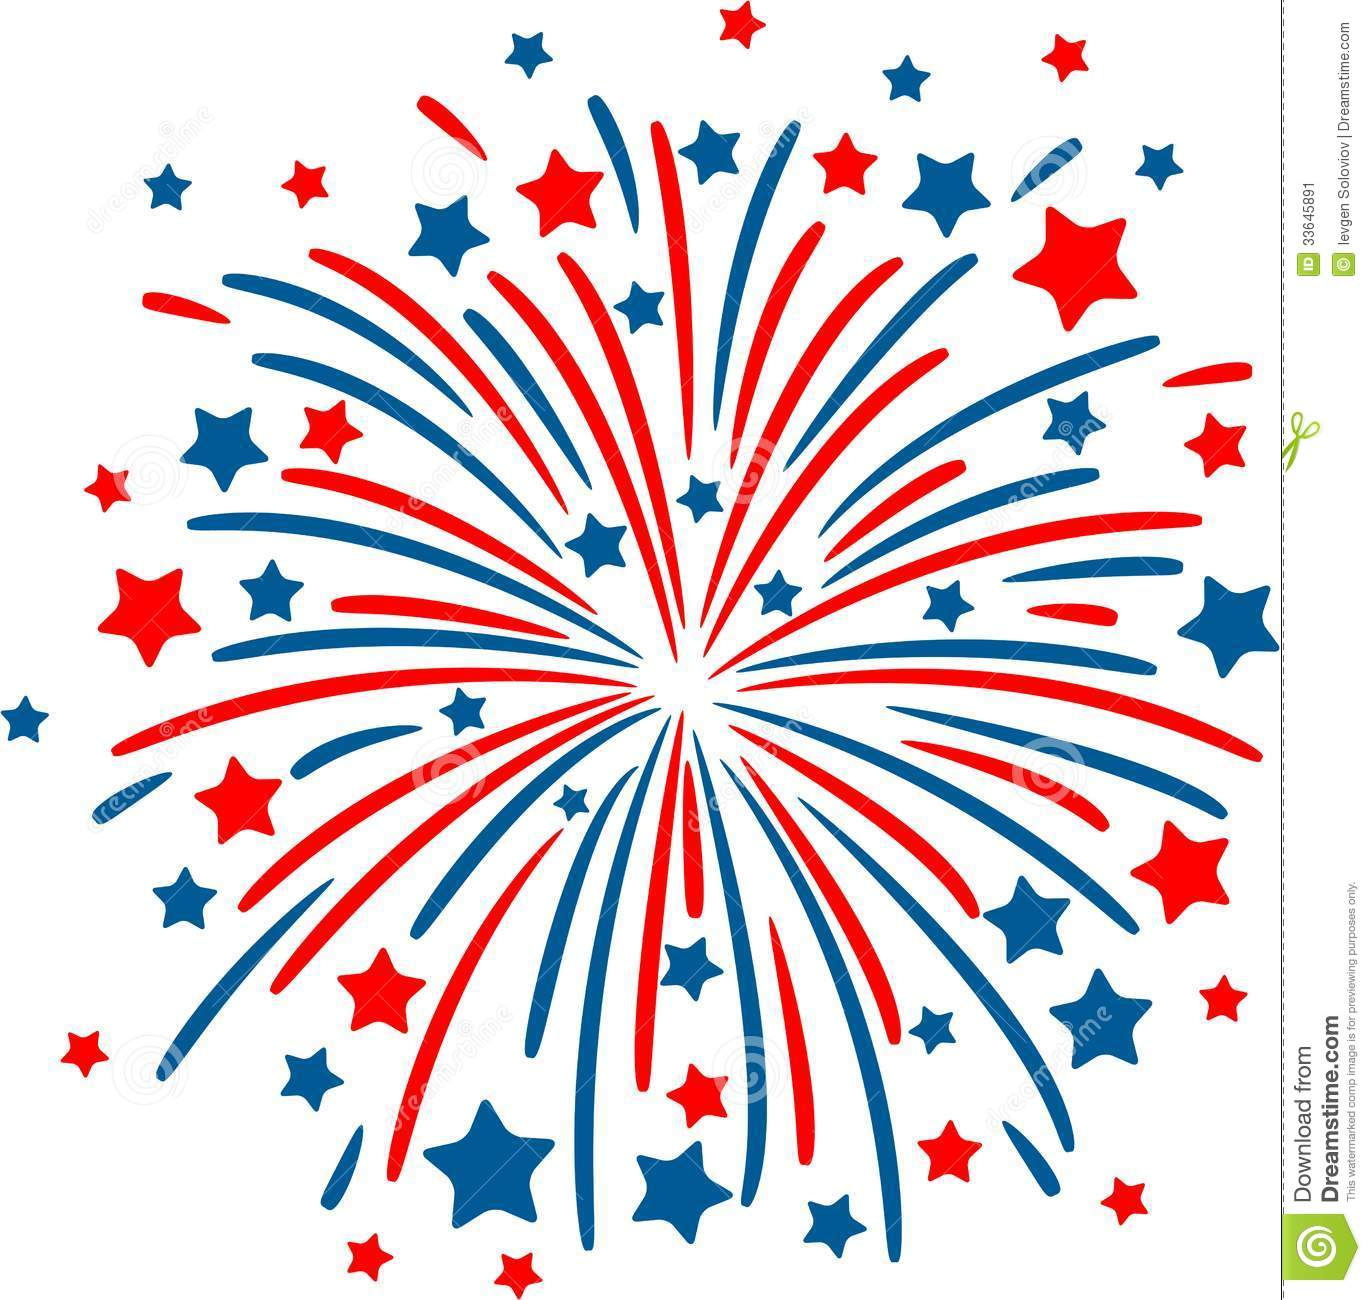 firework clipart - Fireworks Pictures Free Clipart